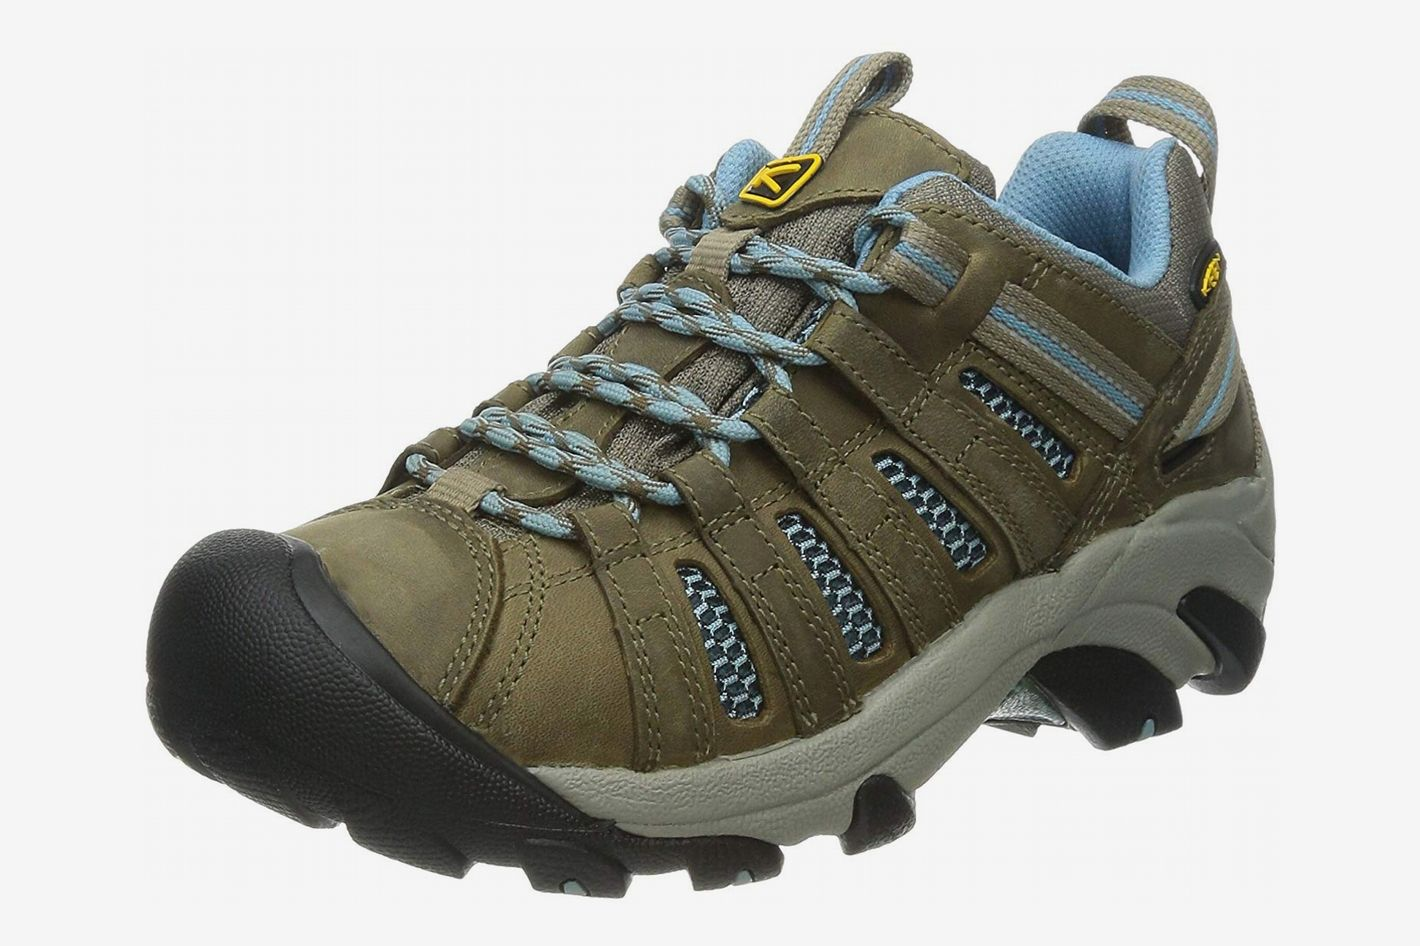 fea341f0279 9 Best Women's Hiking Boots and Sneakers 2019